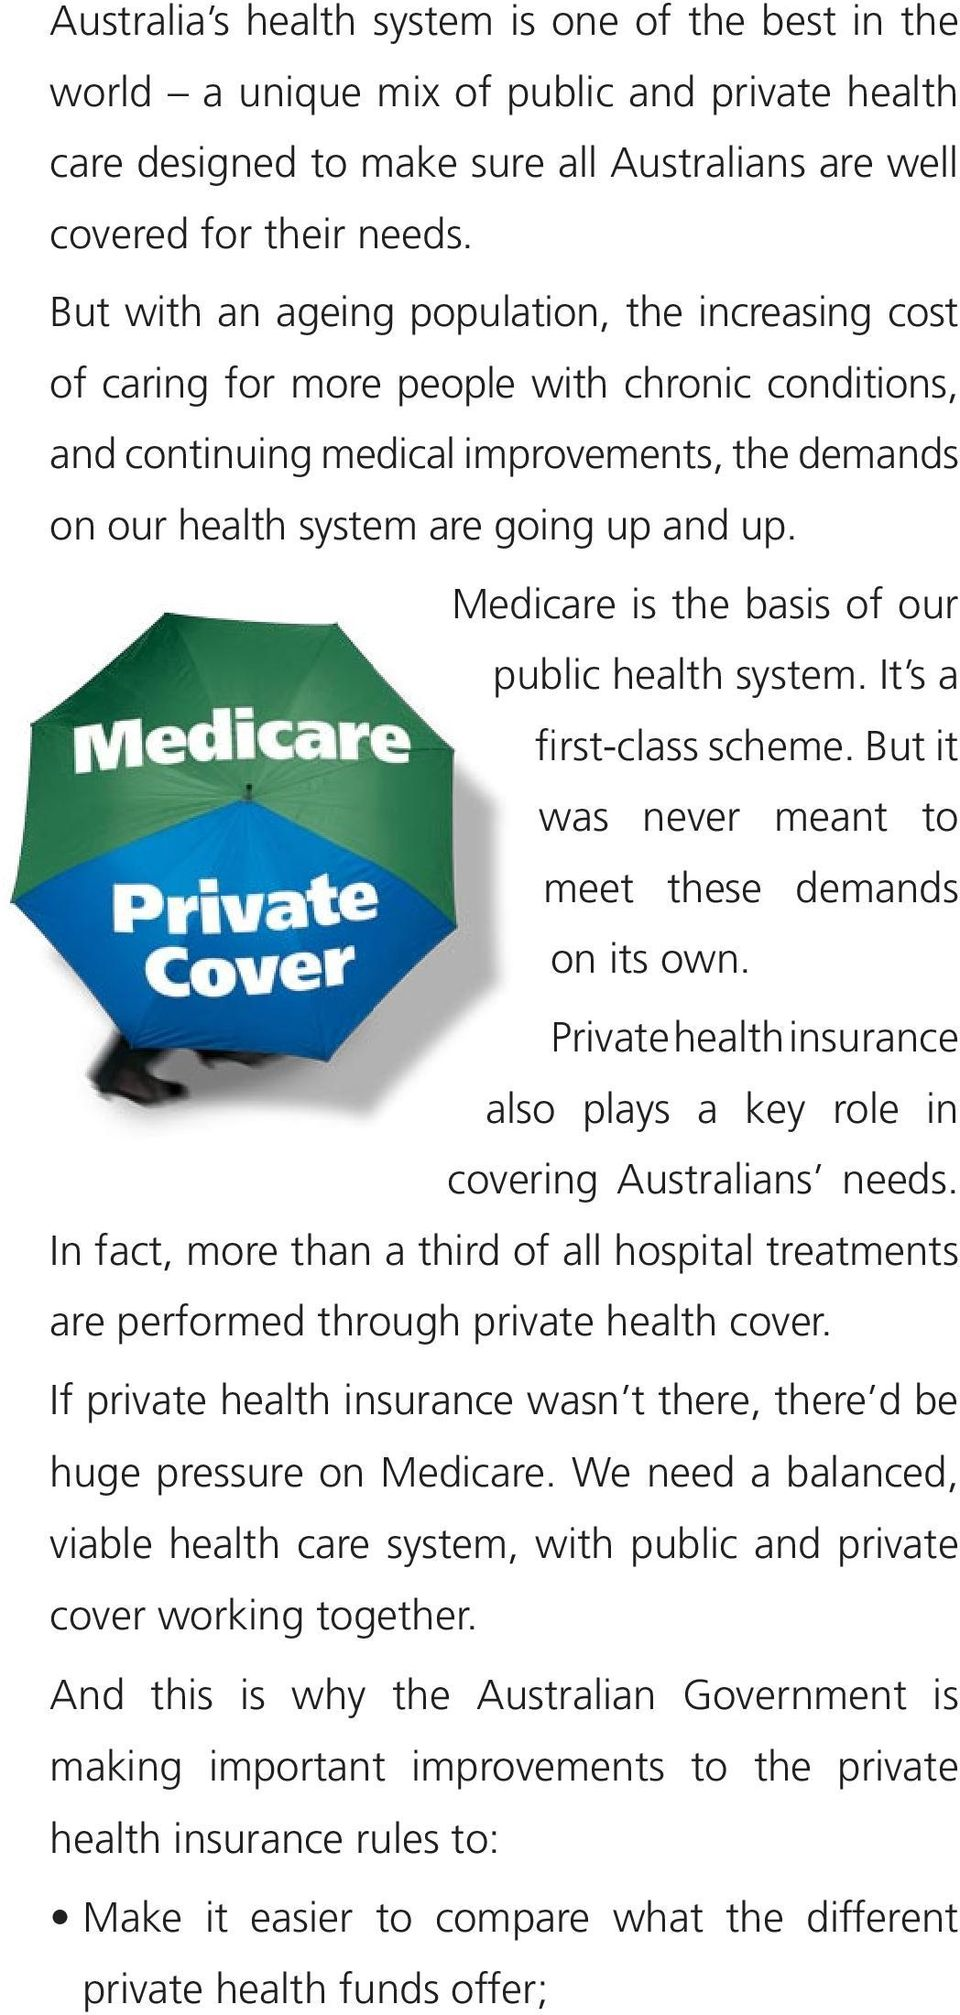 Medicare is the basis of our public health system. It s a first-class scheme. But it was never meant to meet these demands on its own.